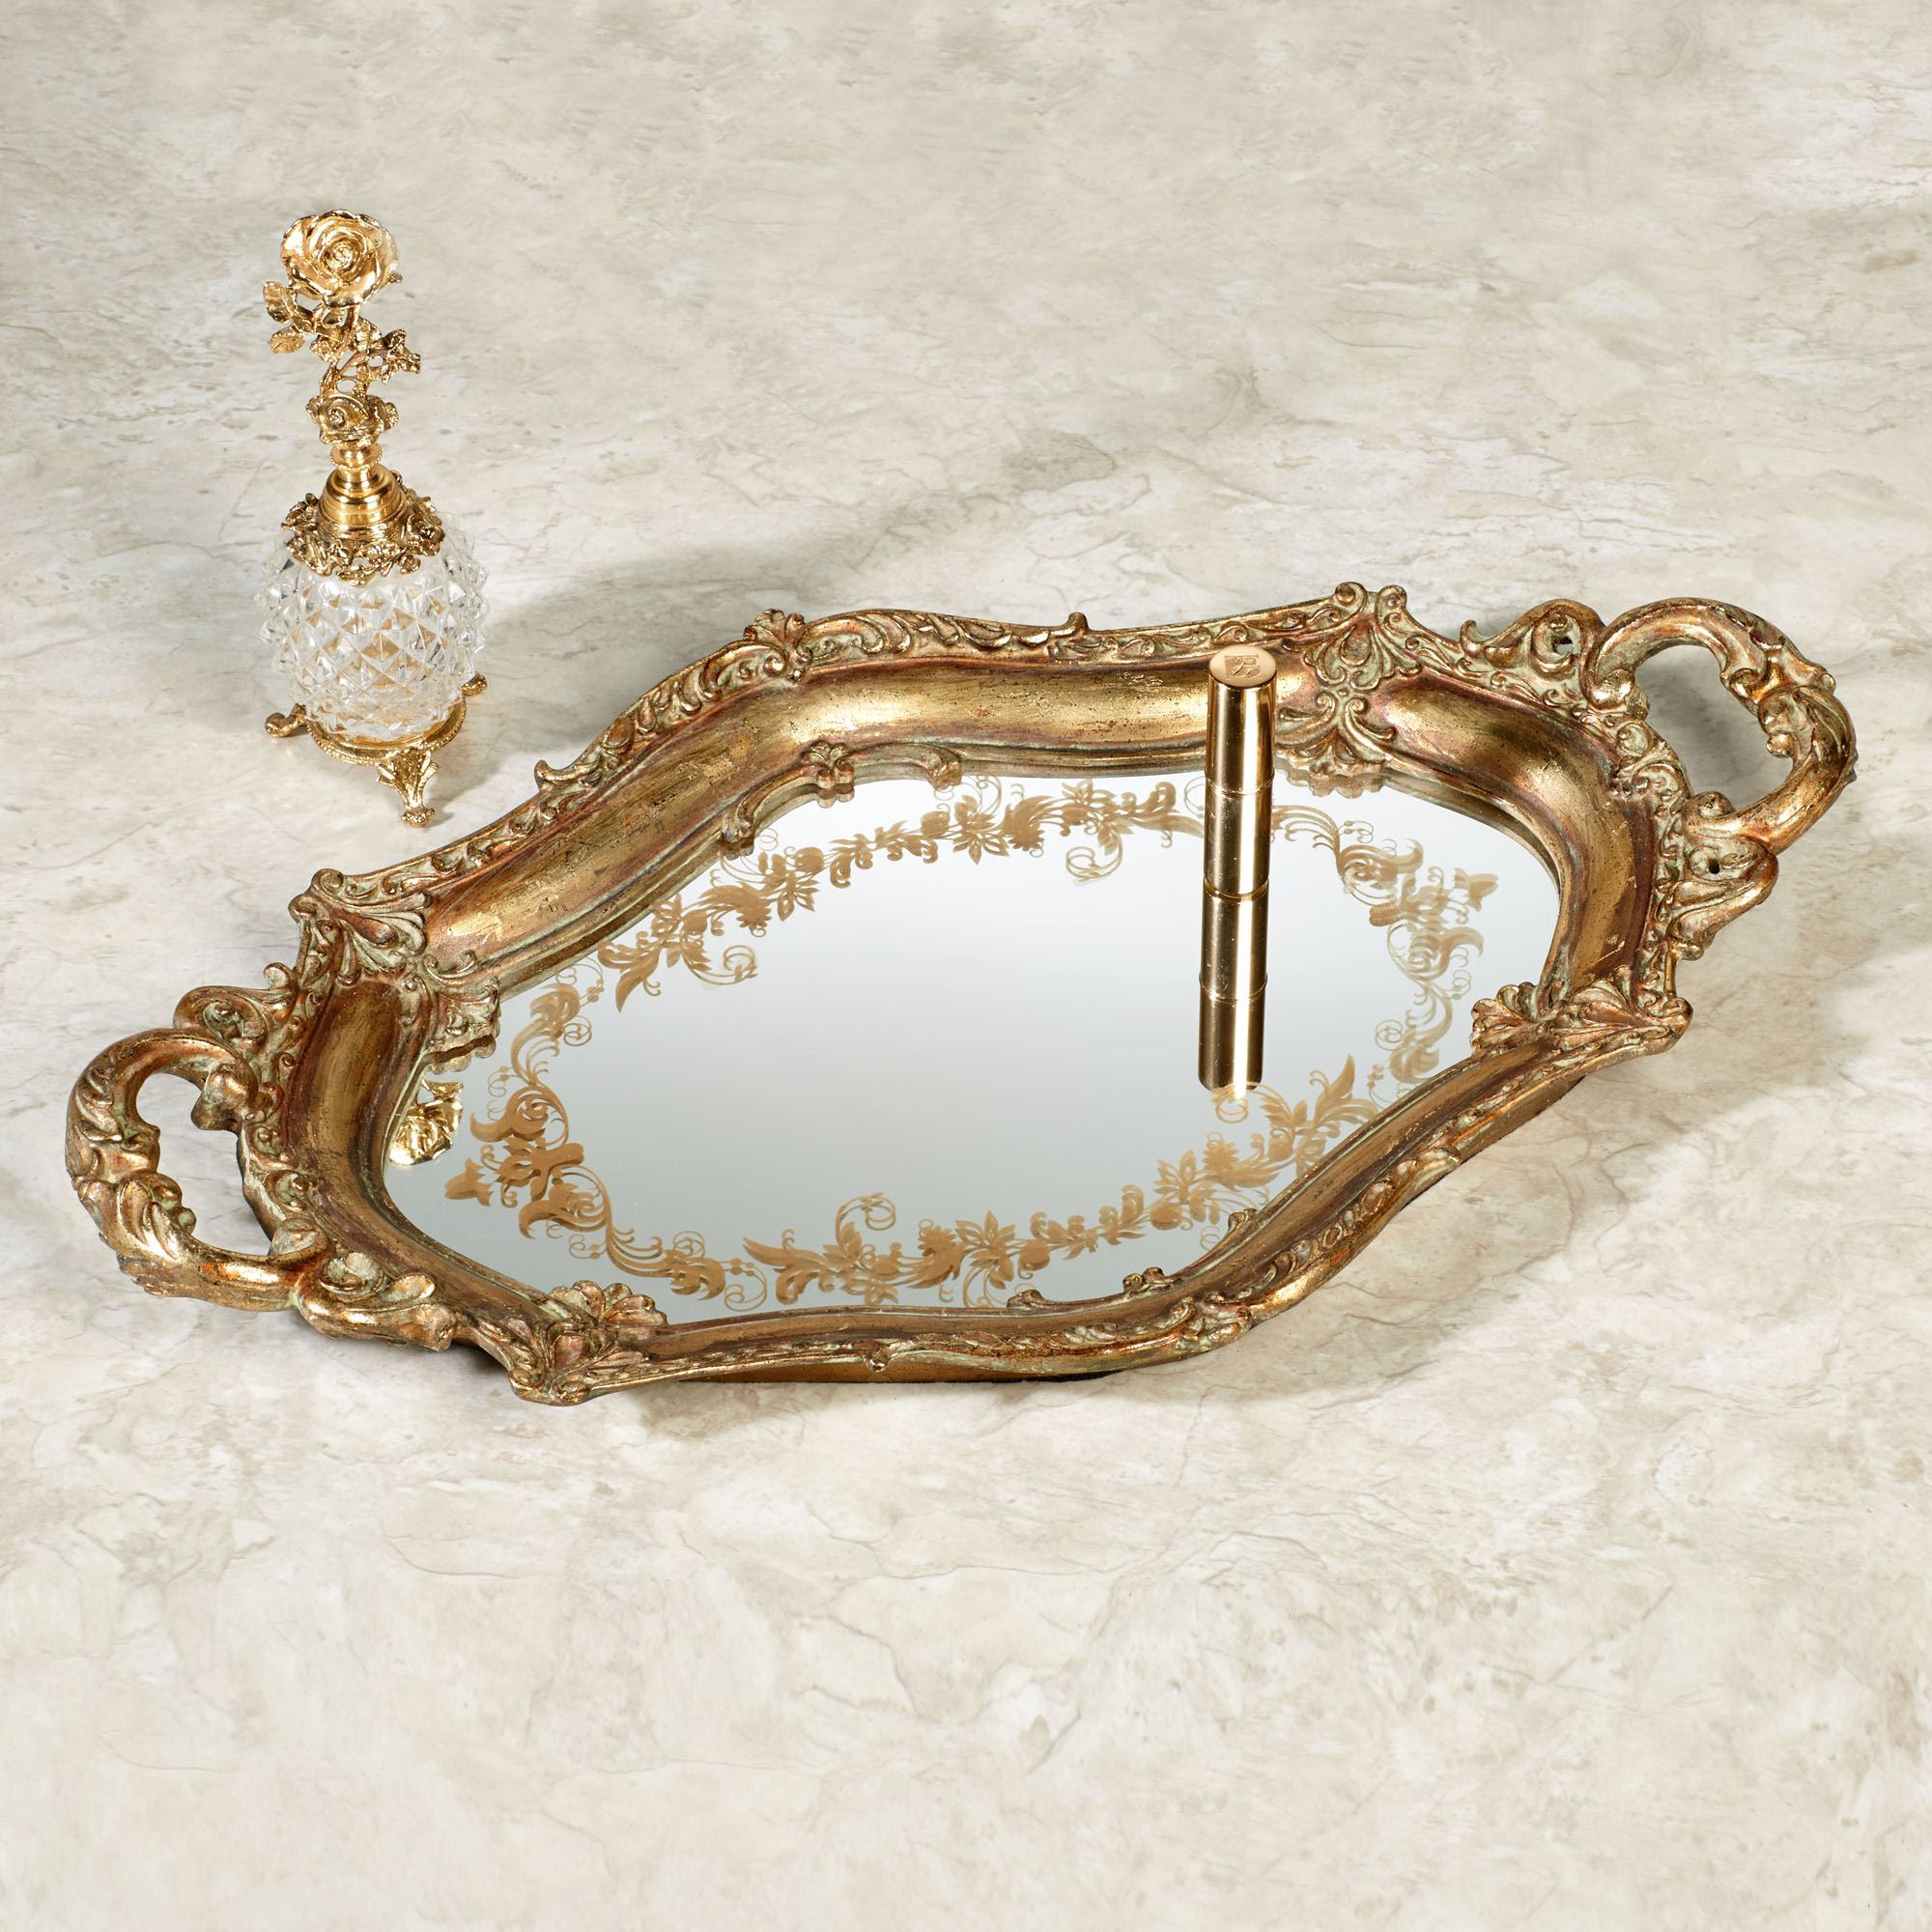 tray decorating mirrored pineapple and vanity mirror gold design grandeur home serving